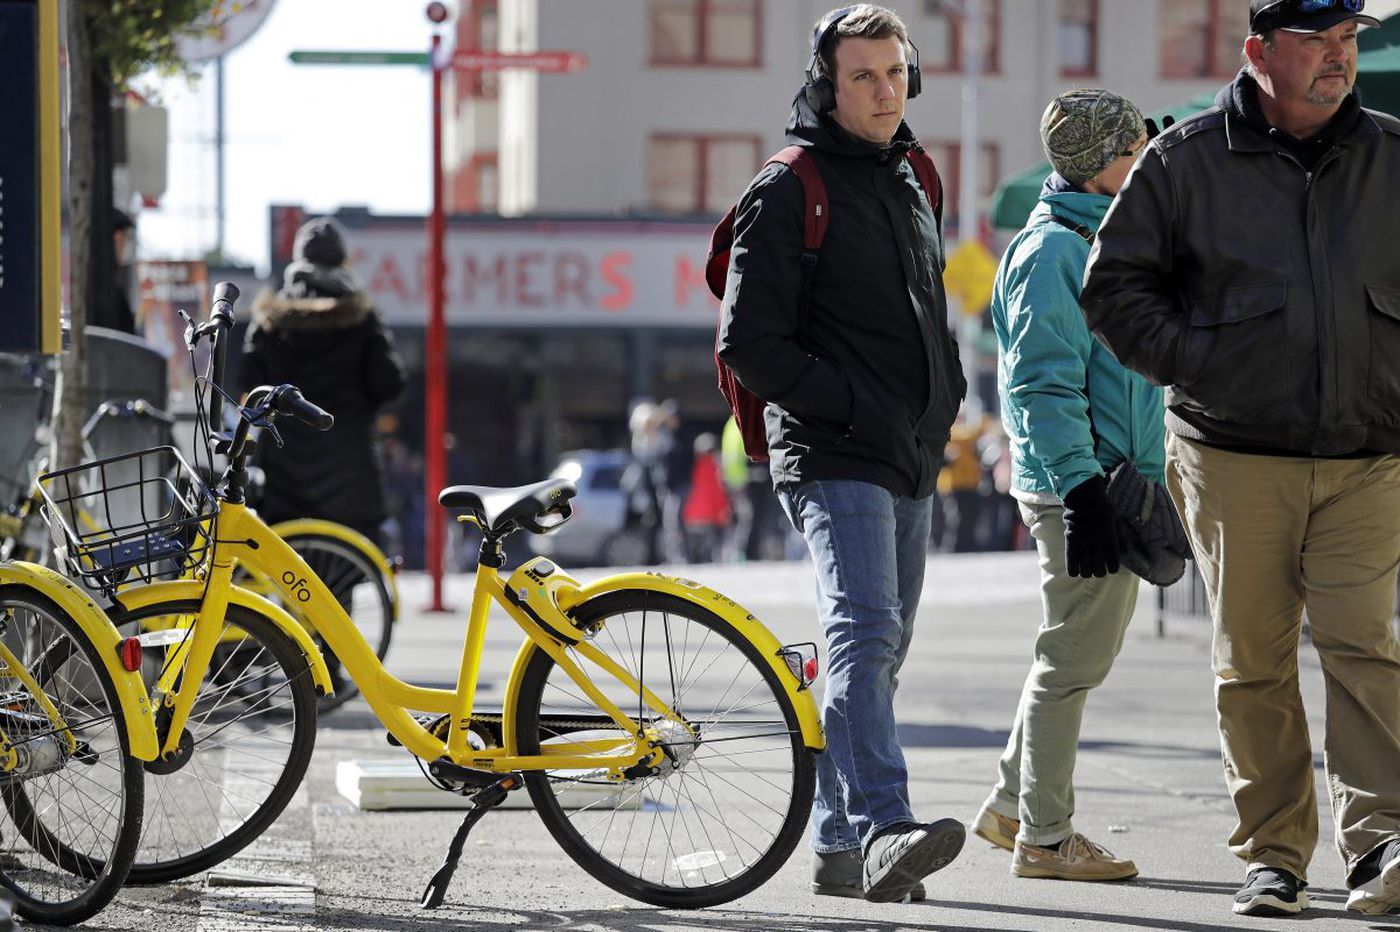 Is Camden ready for bike sharing? Residents will find out this May